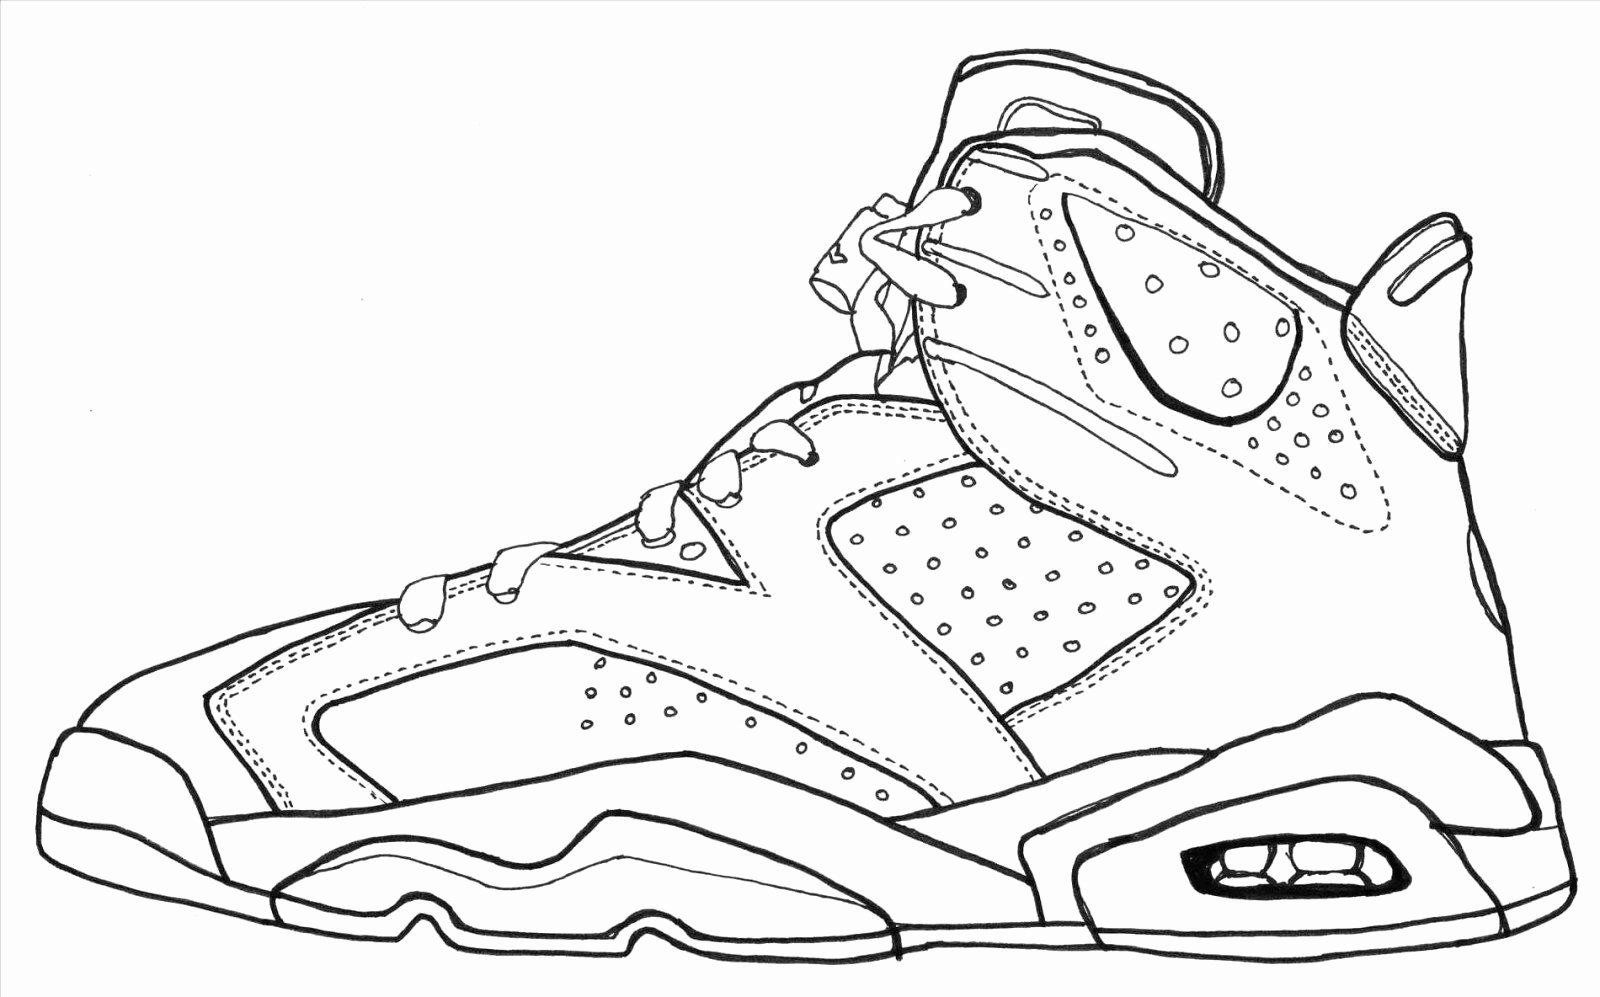 Jordan 15 Coloring Page Lovely Interesting Kyrie Irving Coloring